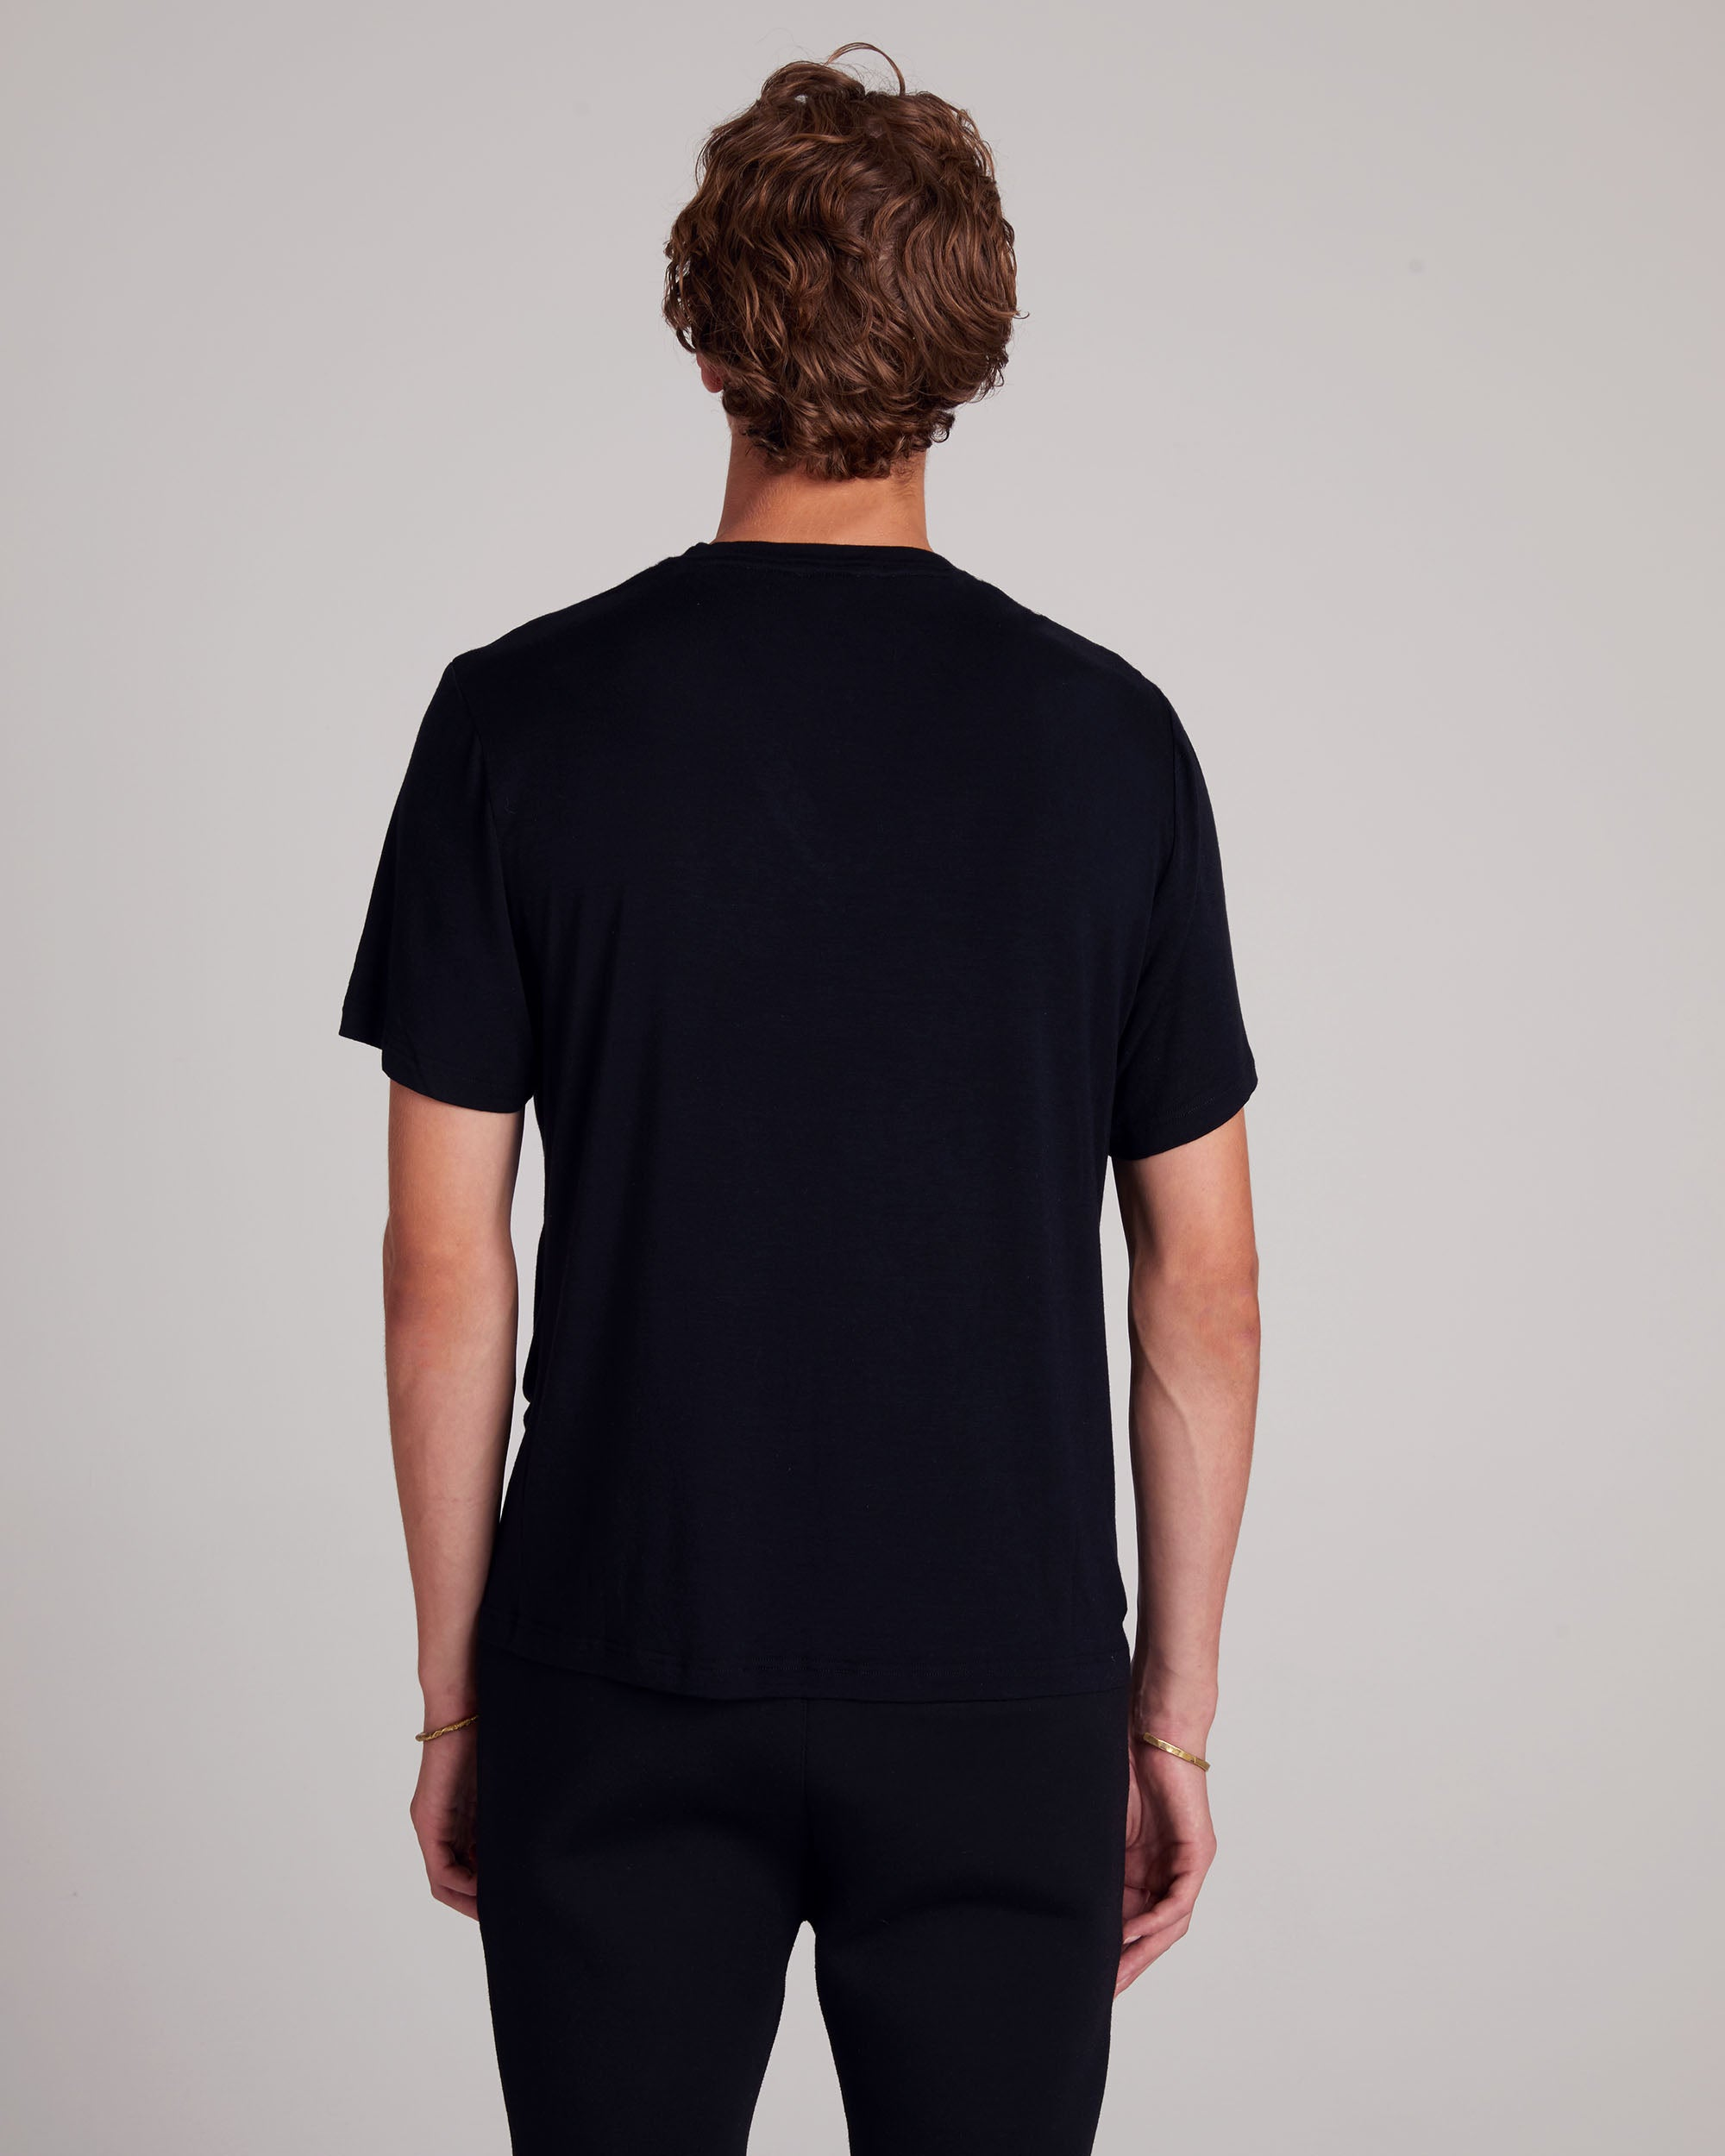 The Base Tee, MEDIUM Jersey